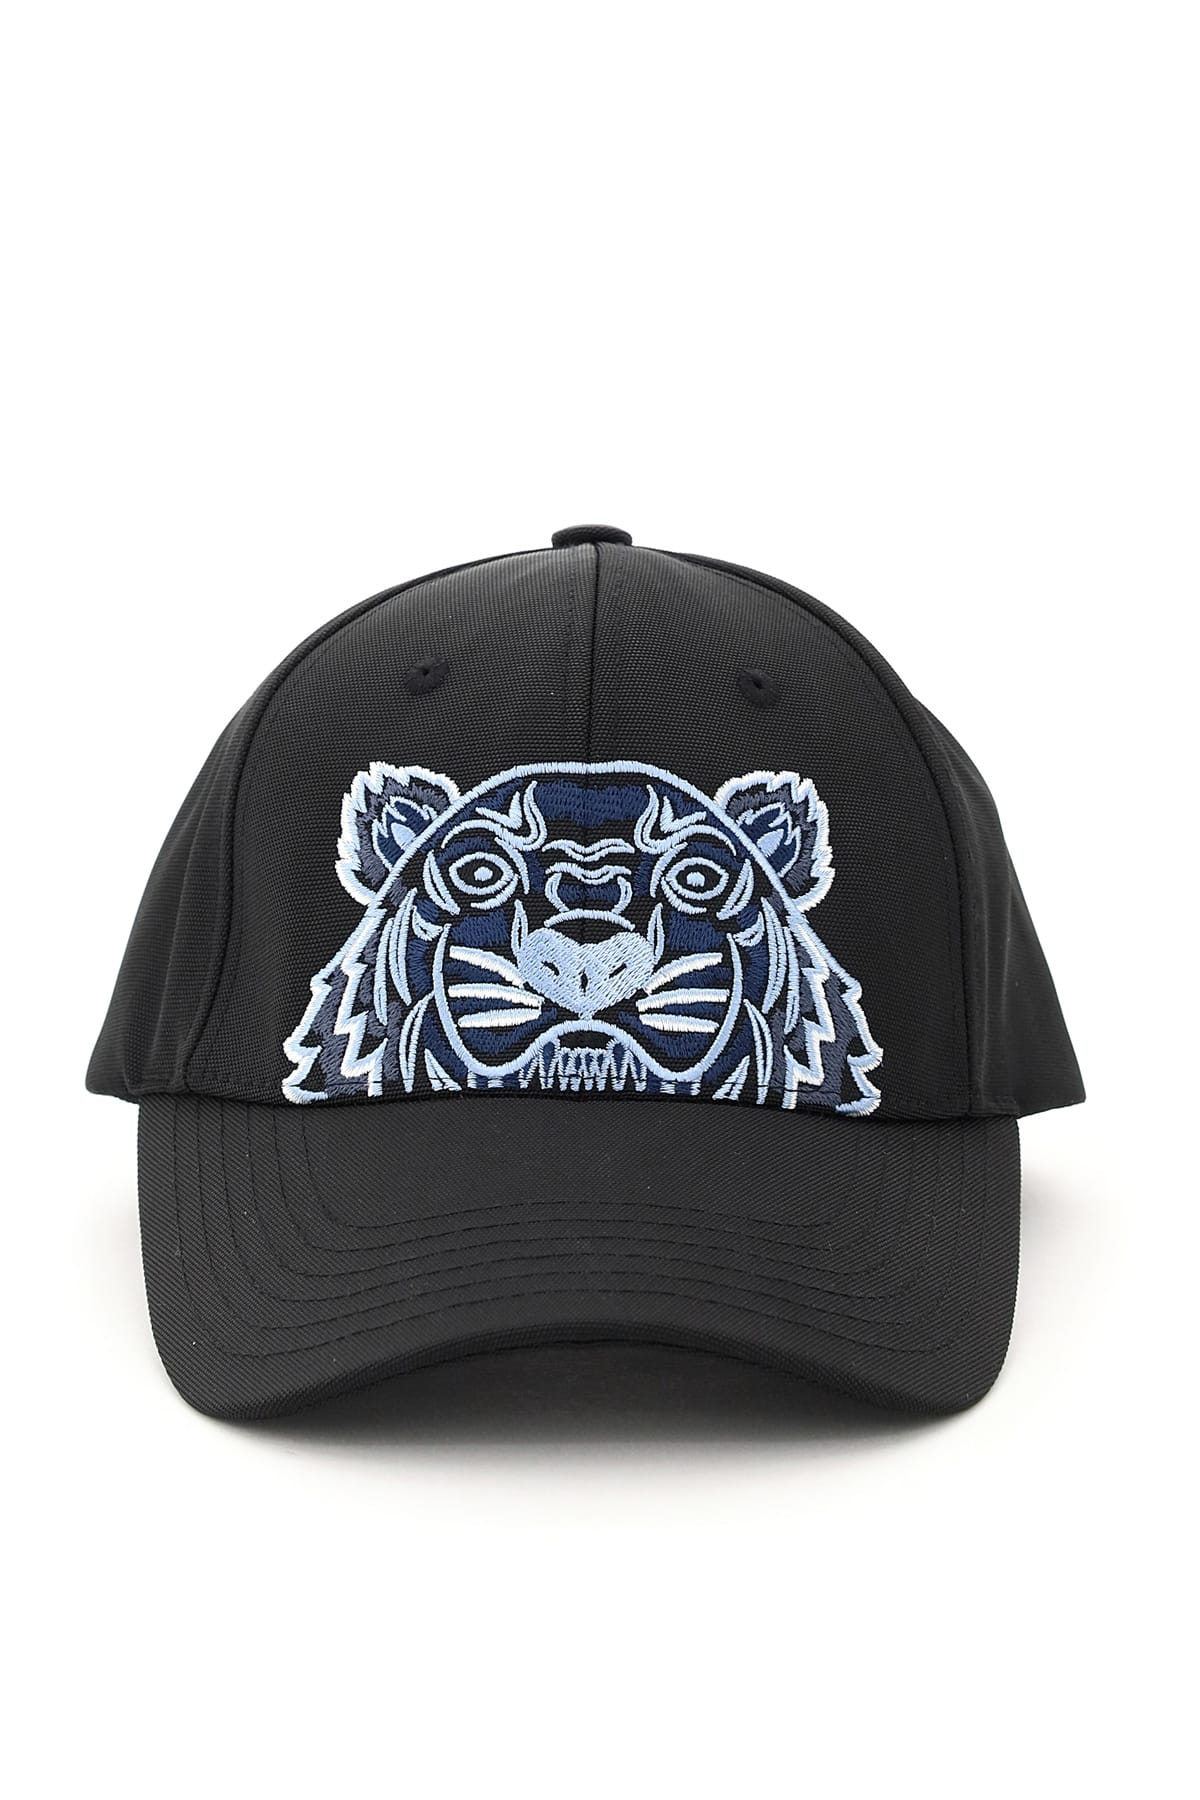 Kenzo Caps BASEBALL CAP TIGER EMBROIDERY